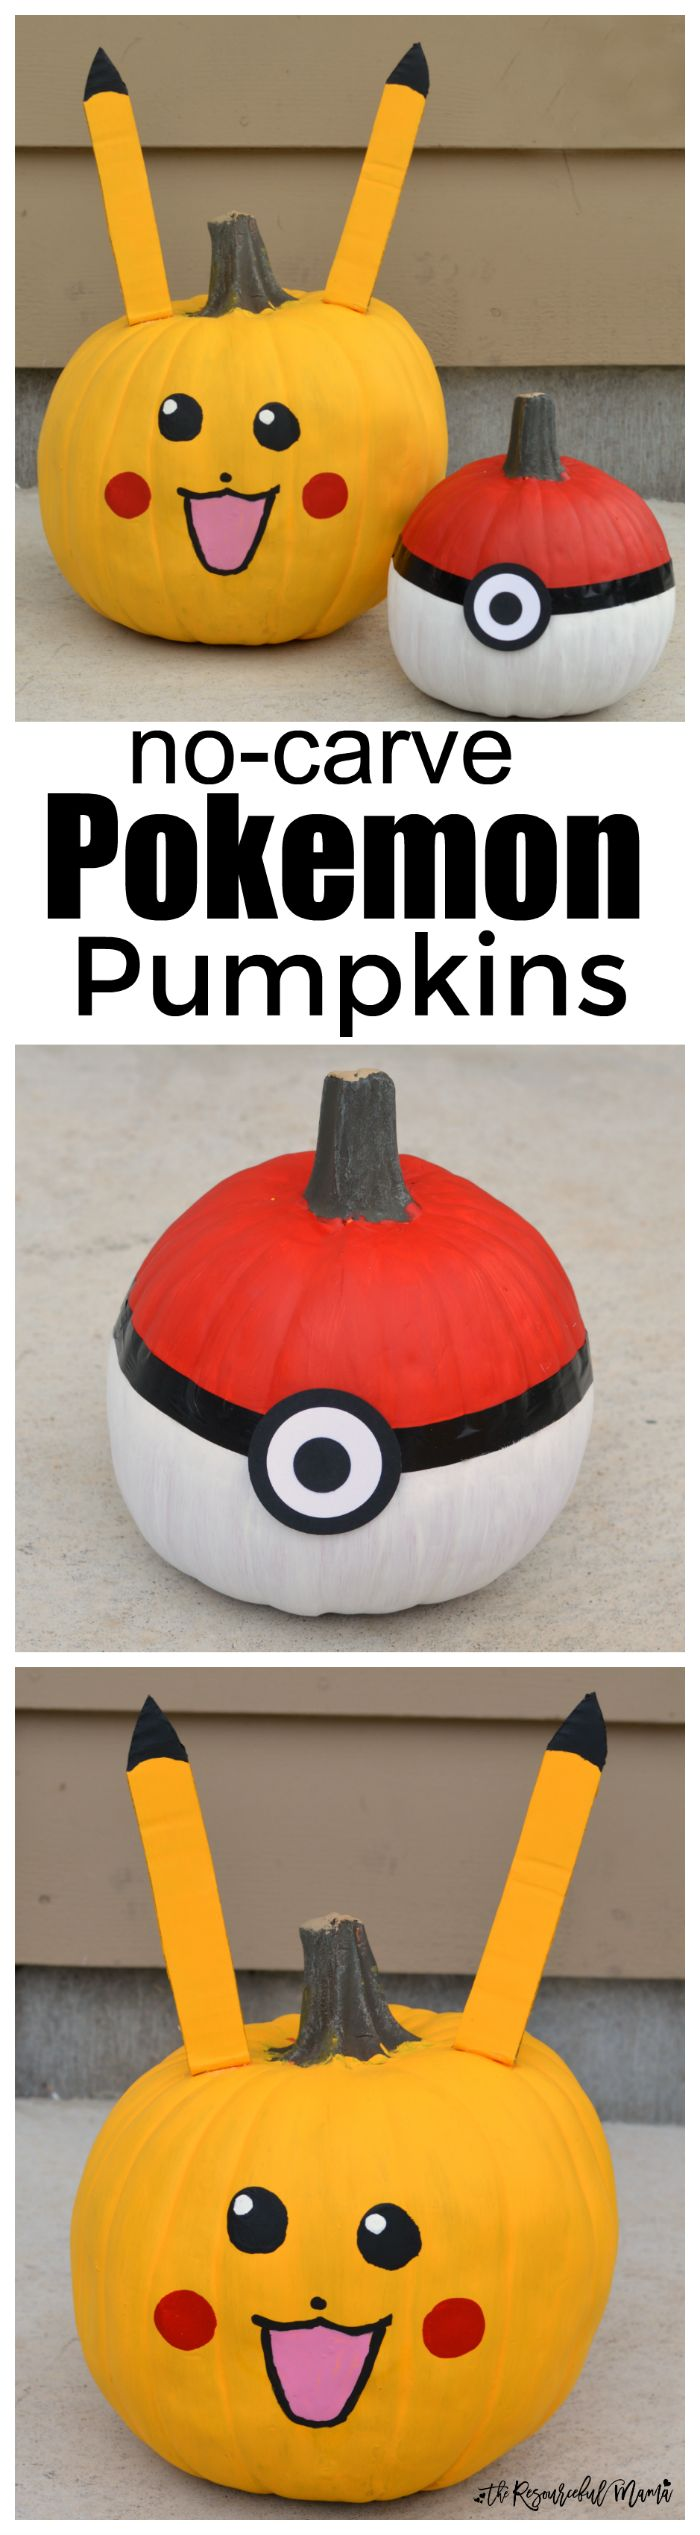 No-carve Poke Ball and Pikachu Pokemon Pumpkins for Halloween. favorite characters | painted pumpkins